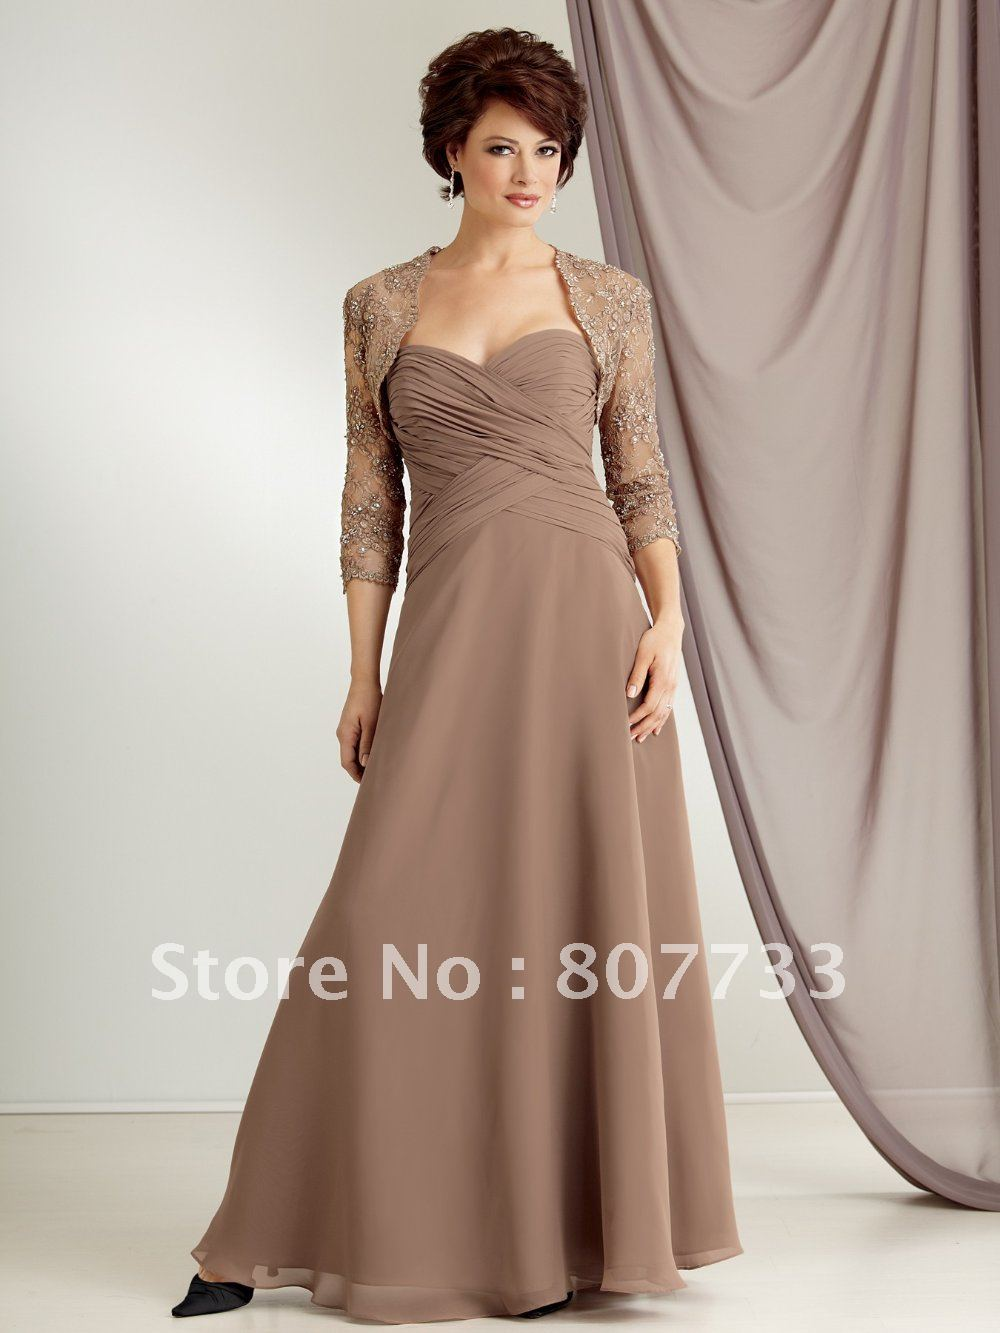 Plus Size Mother Of The Groom Dresses For Fall 2018 ...